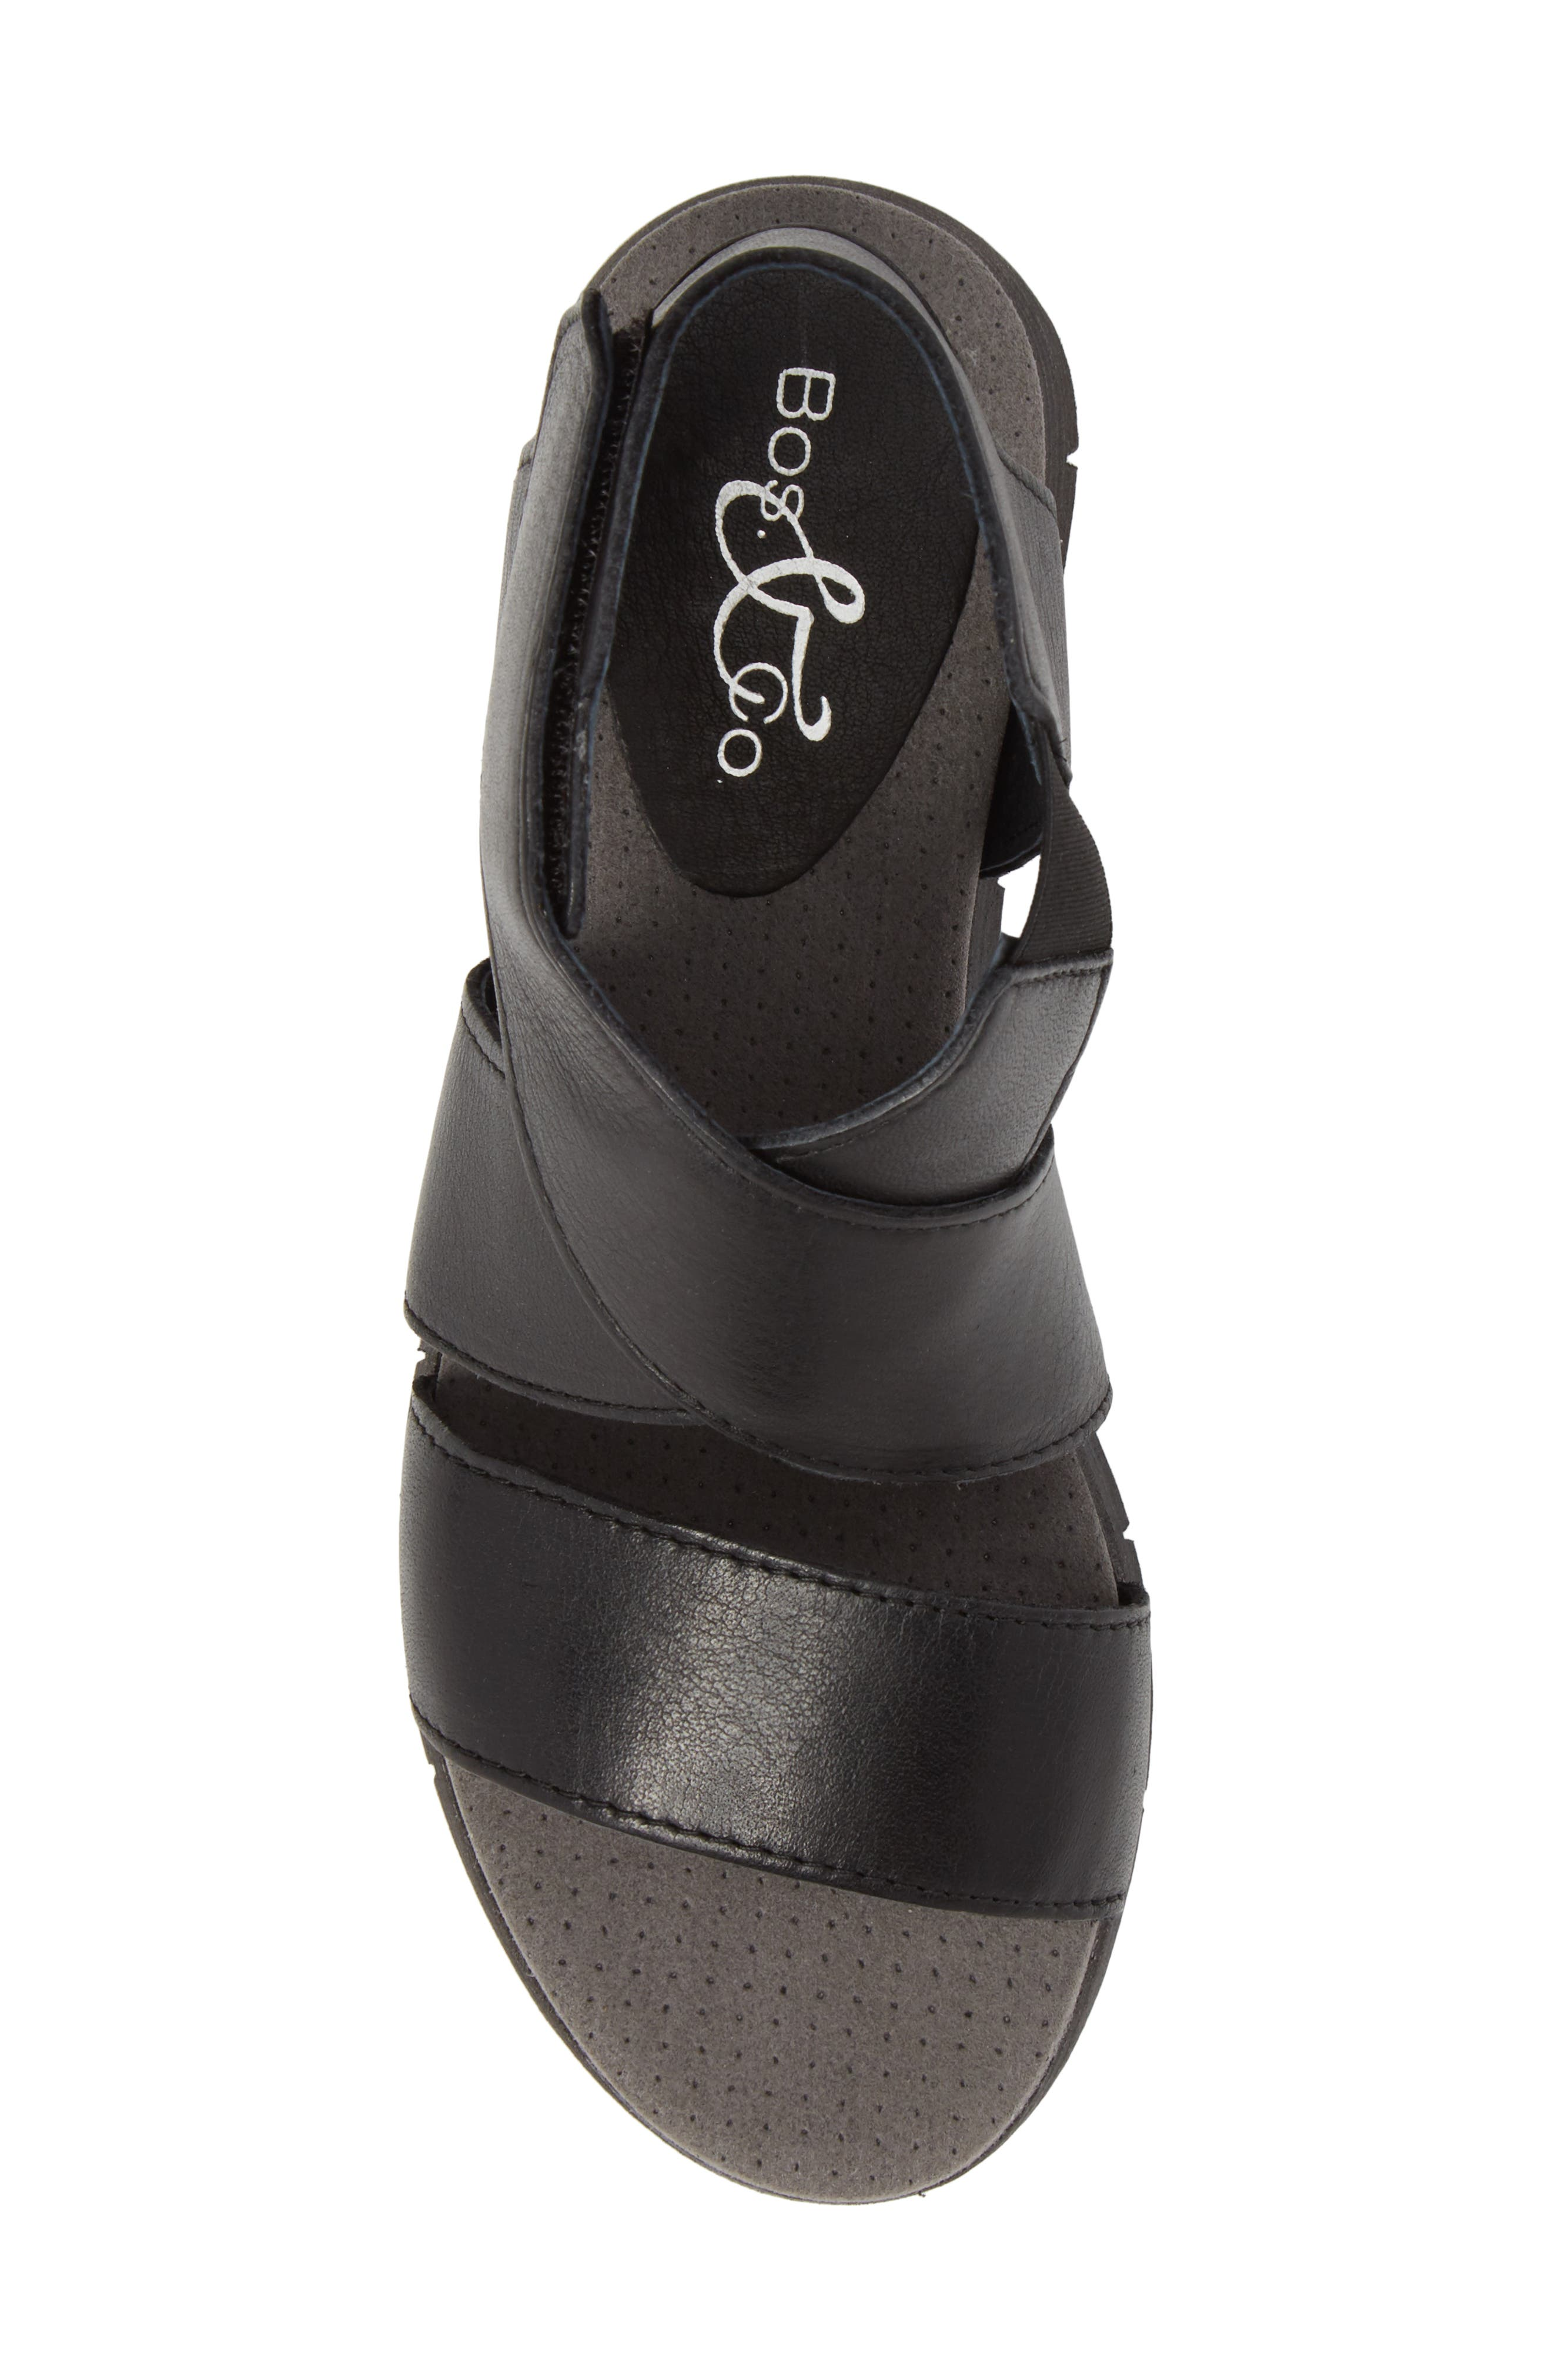 Piper Wedge Sandal,                             Alternate thumbnail 5, color,                             BLACK SAUVAGE LEATHER